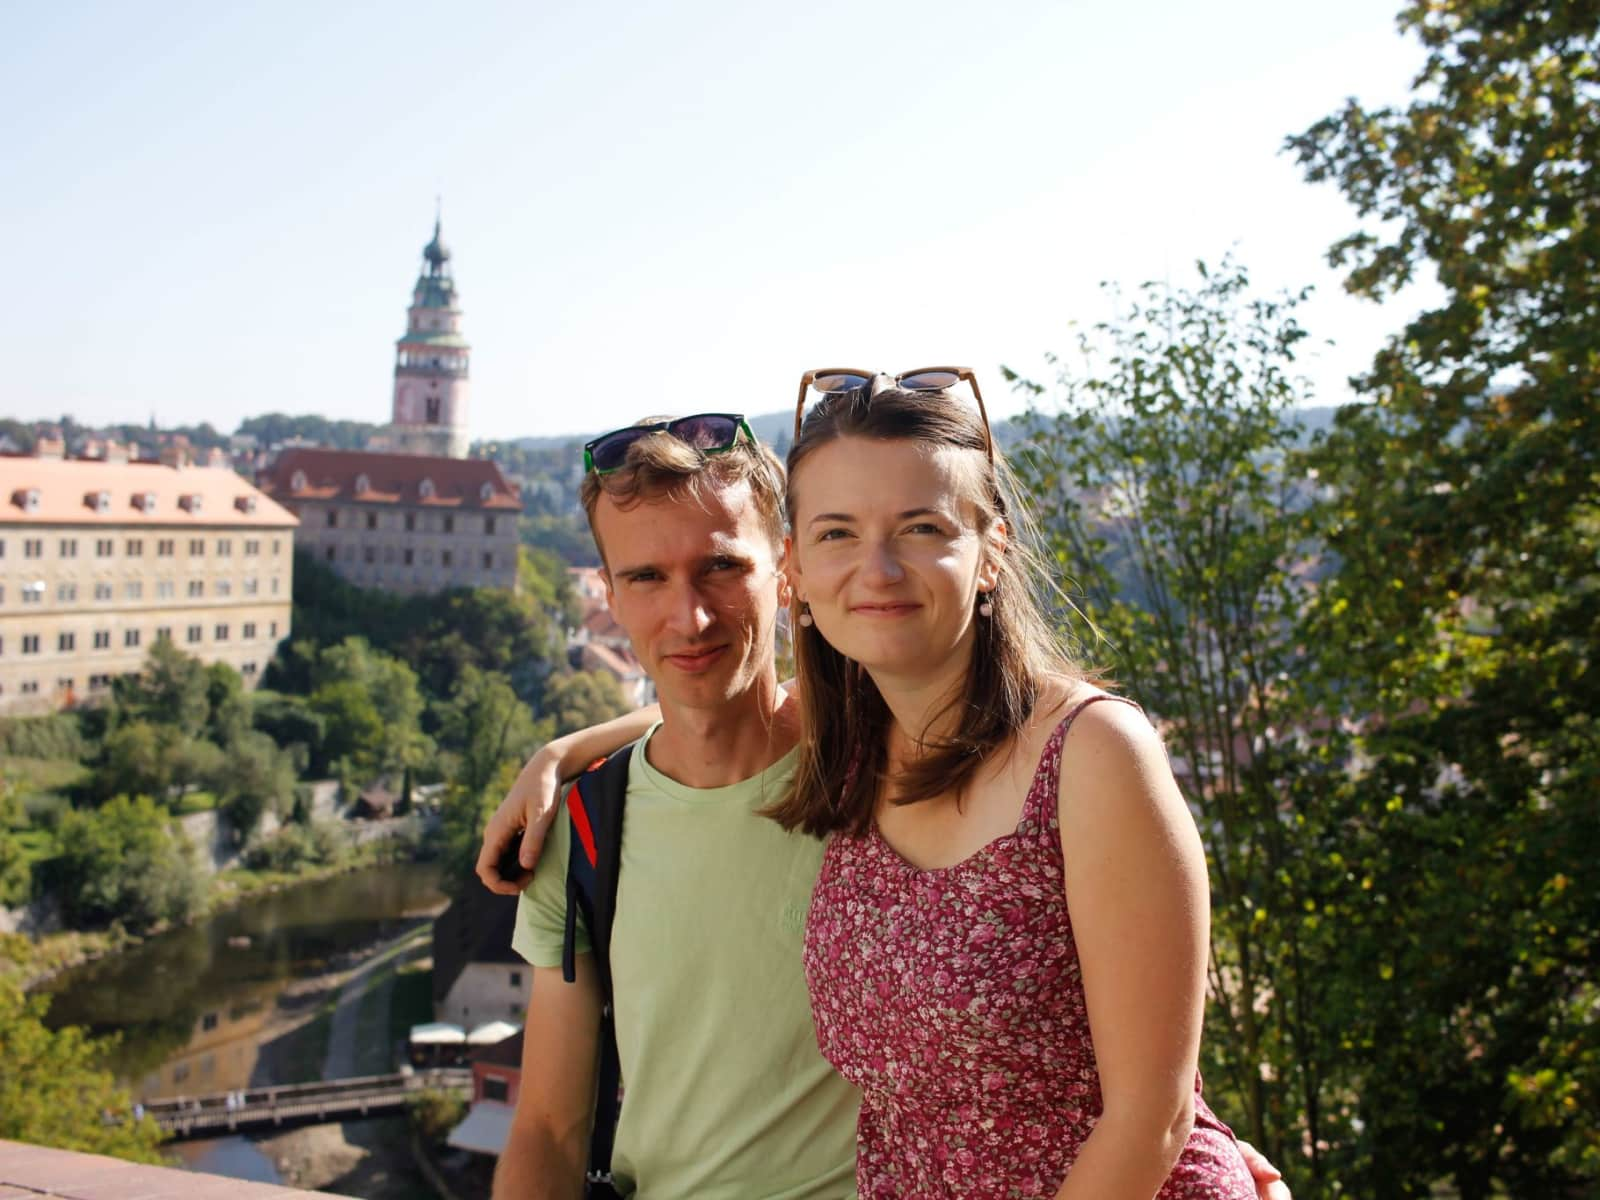 Linda & Jirka from Prague, Czech Republic